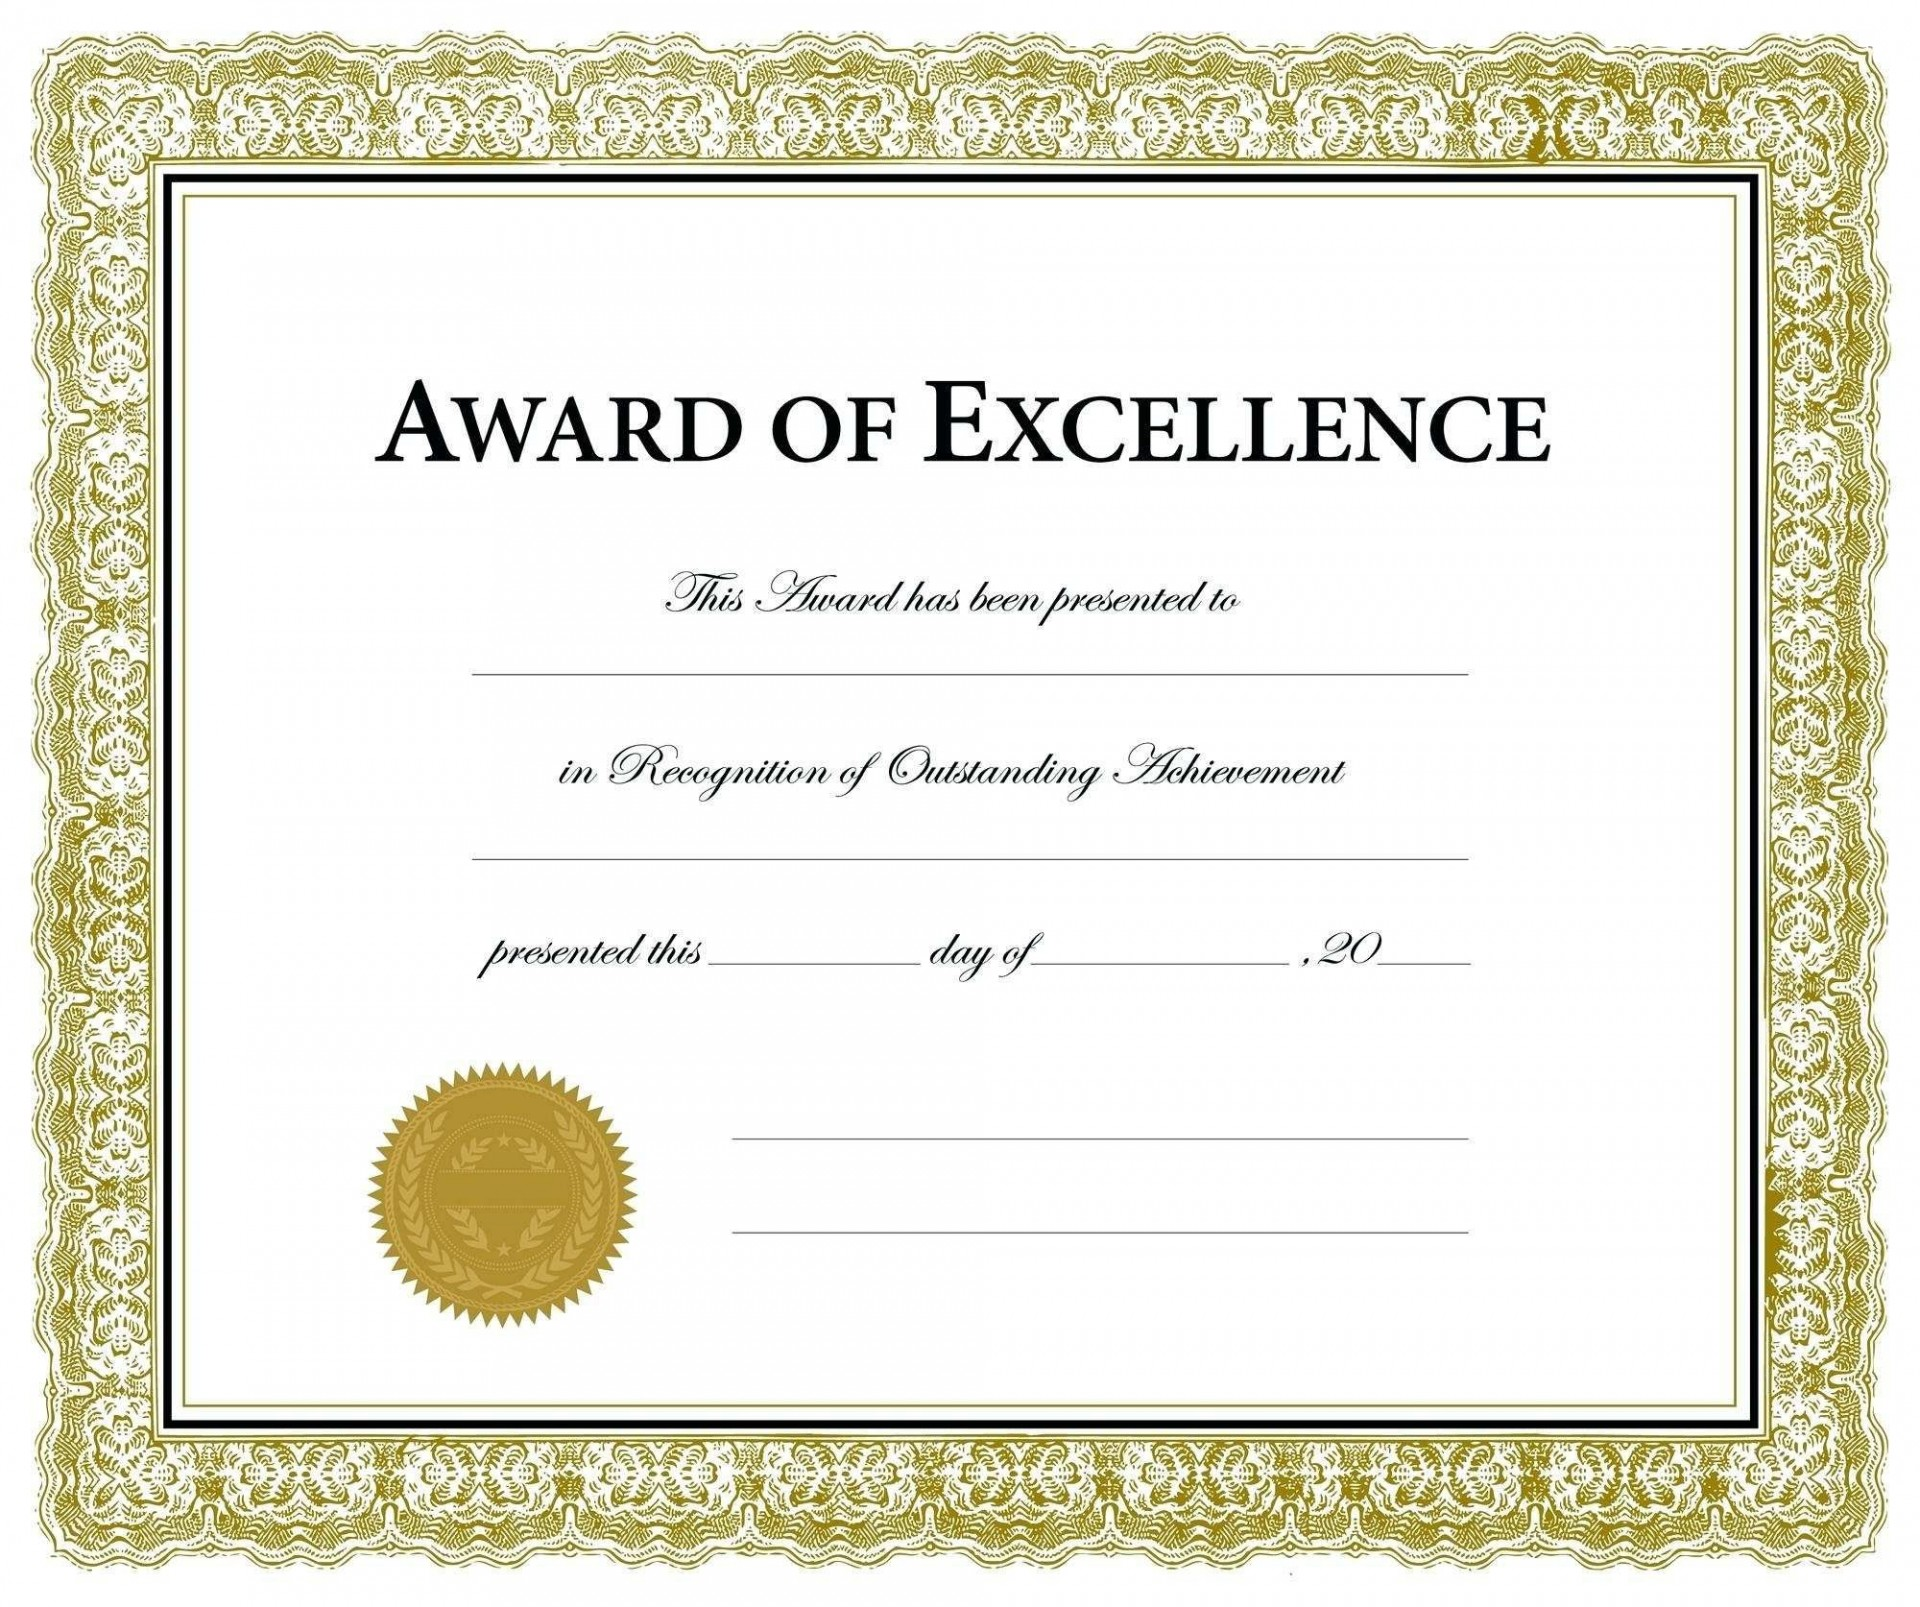 009 Magnificent Blank Award Certificate Template Highest Quality  Printable Math Editable Free1920